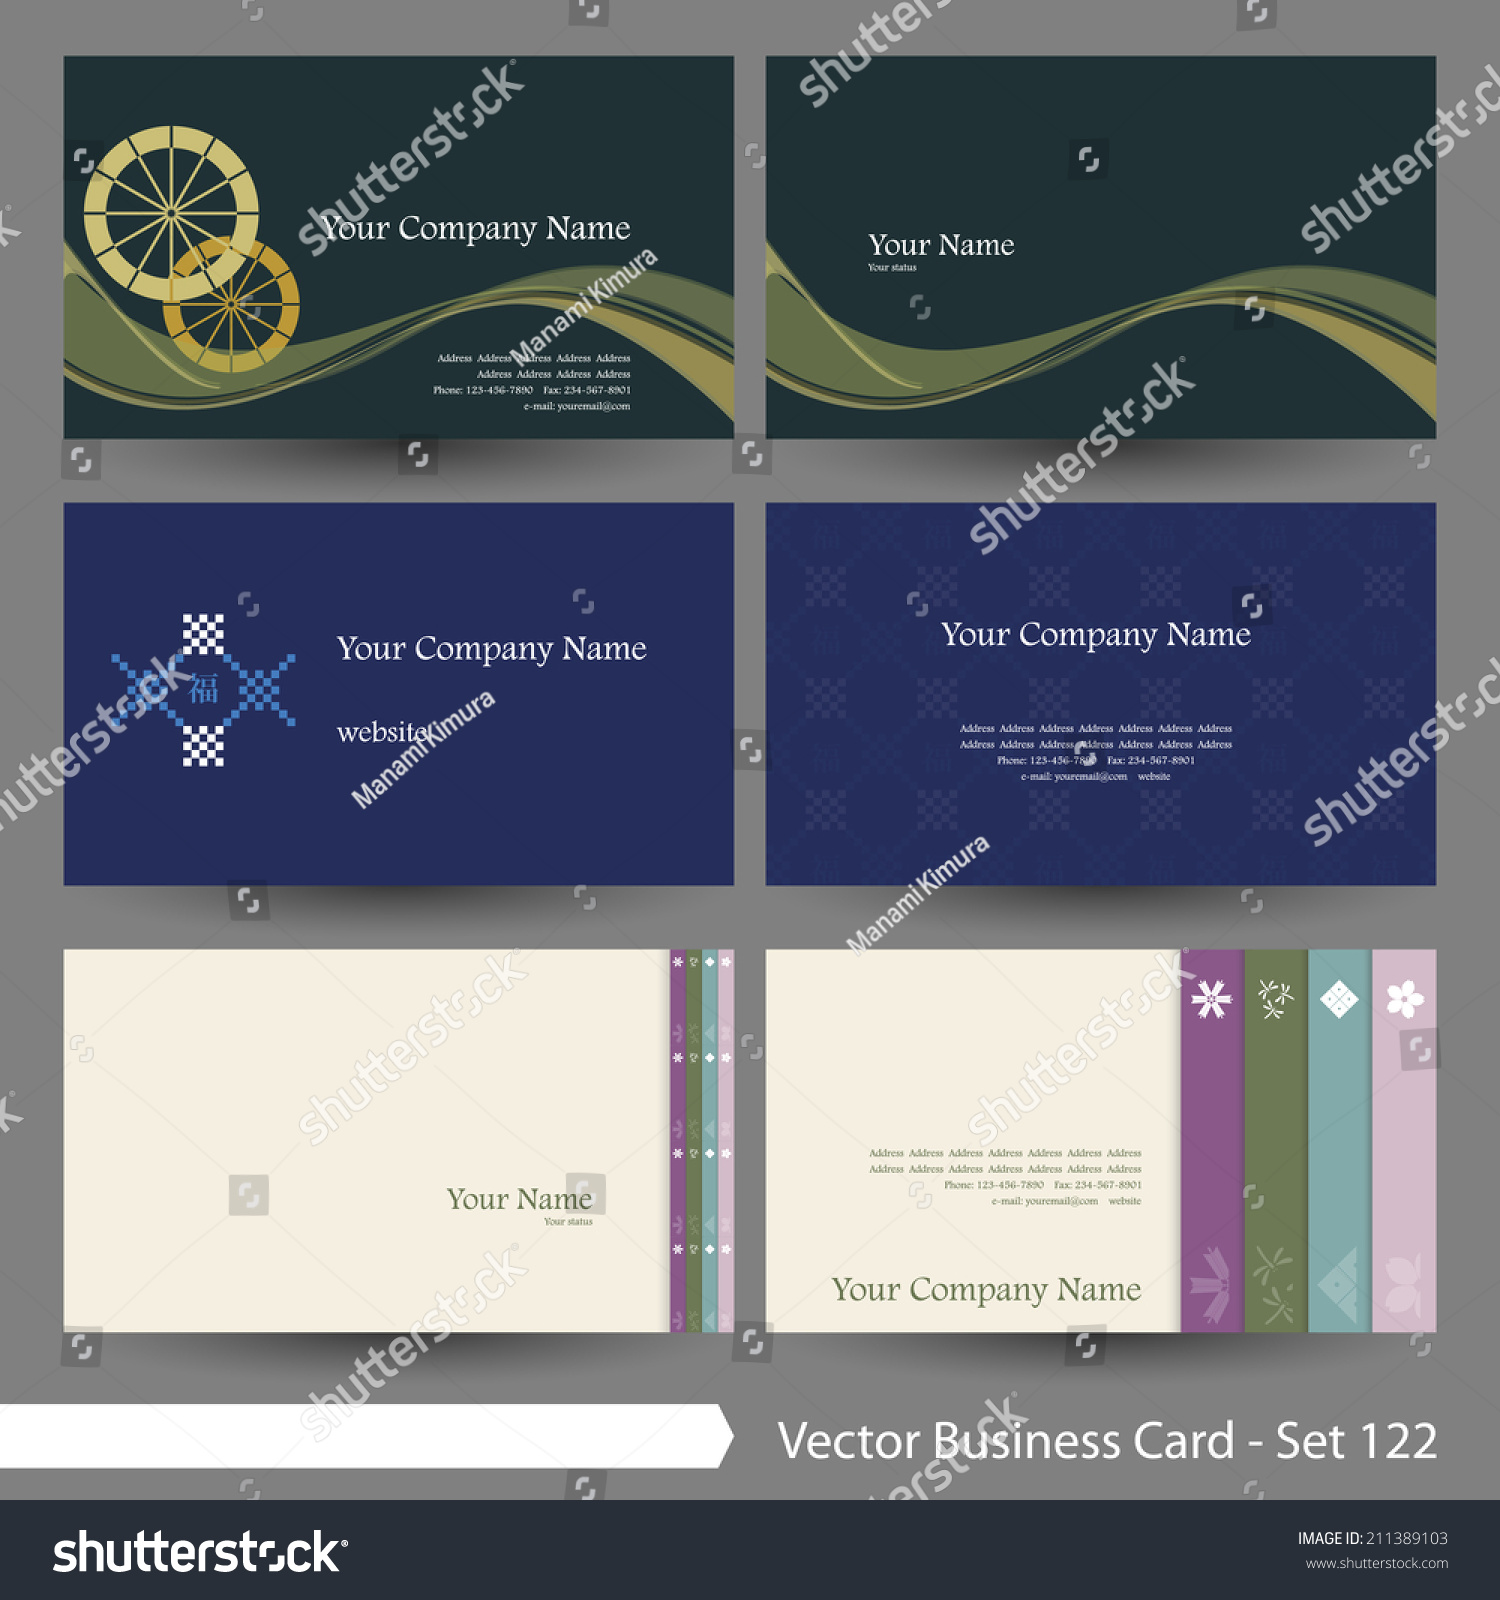 Business sympathy cards image collections profit and loss graphic business cards image collections free business cards stock vector vector business card template set japanese magicingreecefo Gallery